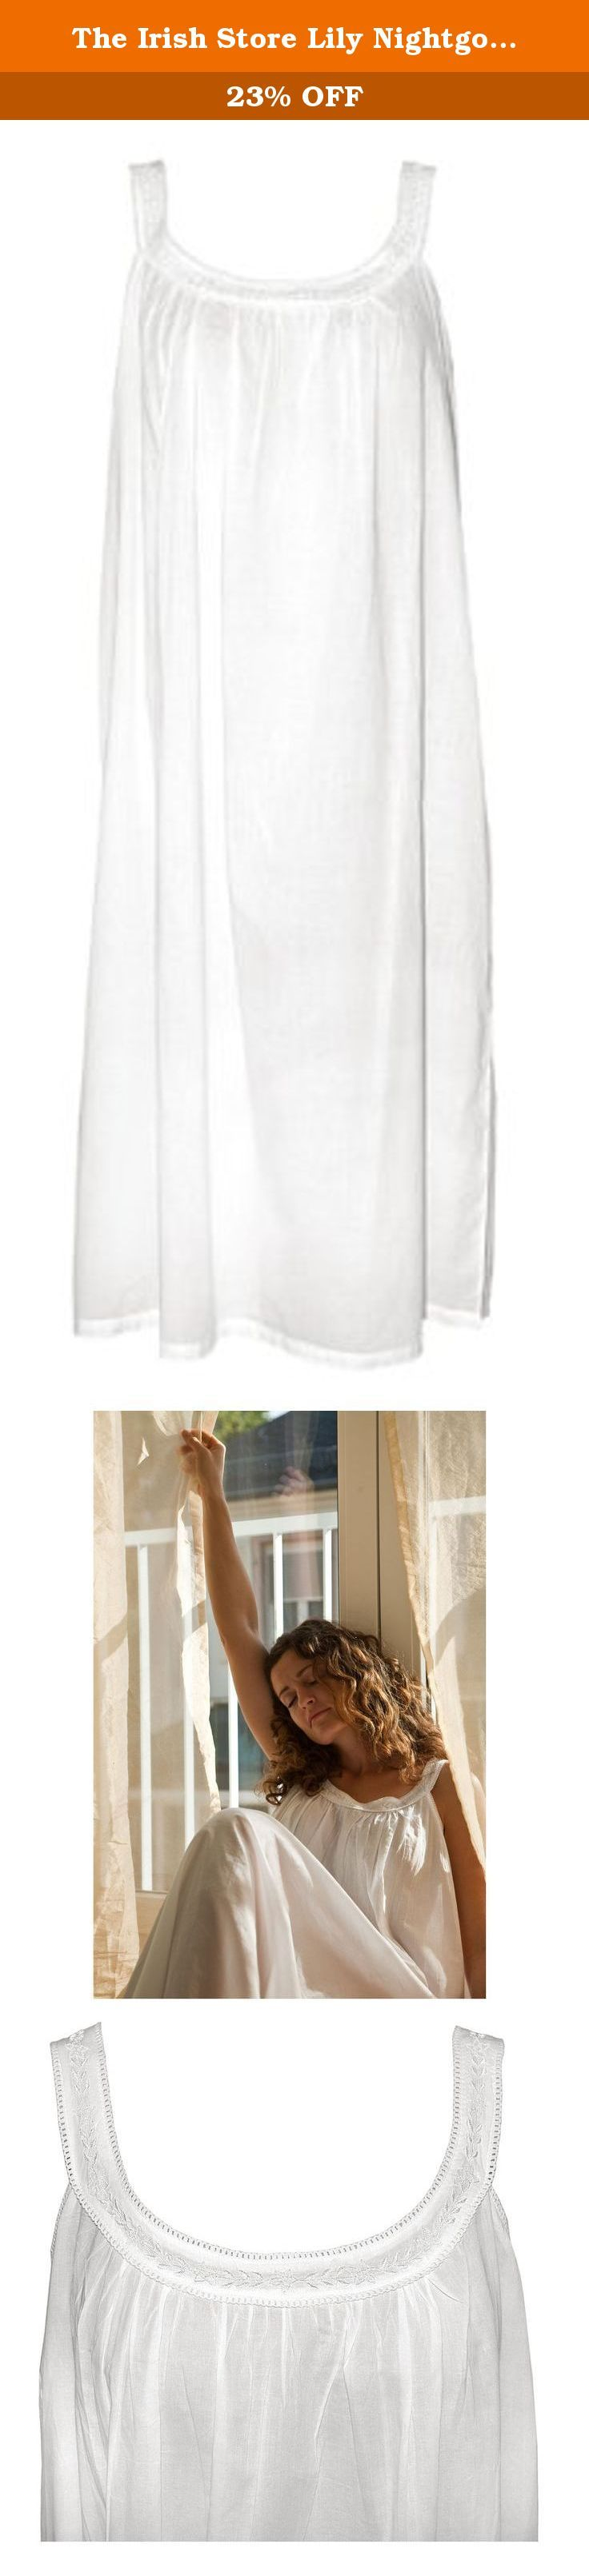 The Irish Store Lily Nightgown White M/L. A simple classic nightgown with a round neckline, delicate embroidery detail and thin straps.